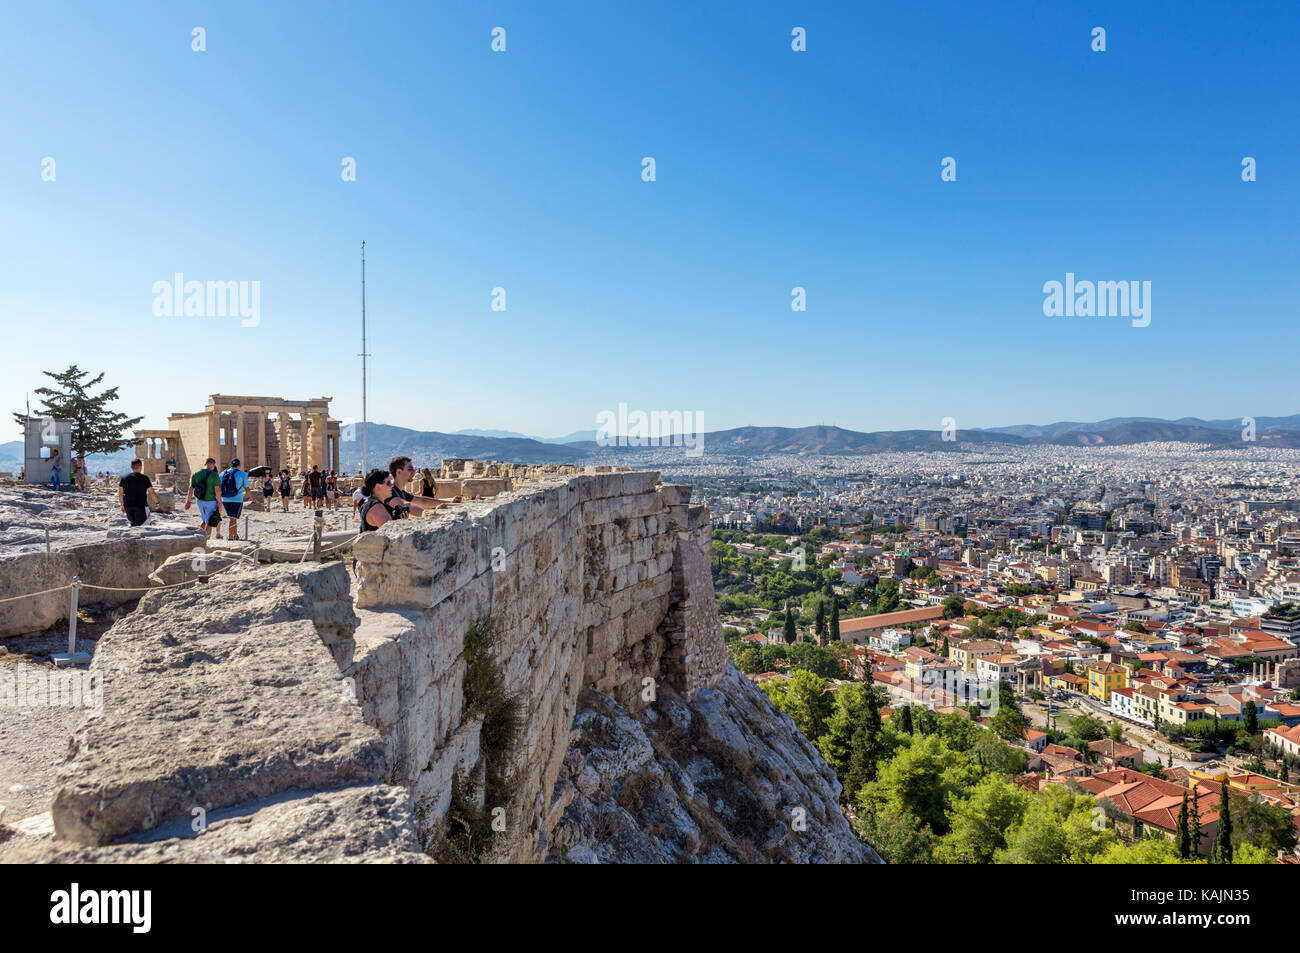 View over the city from the walls of the Acropolis, Athens, Greece - Stock Image